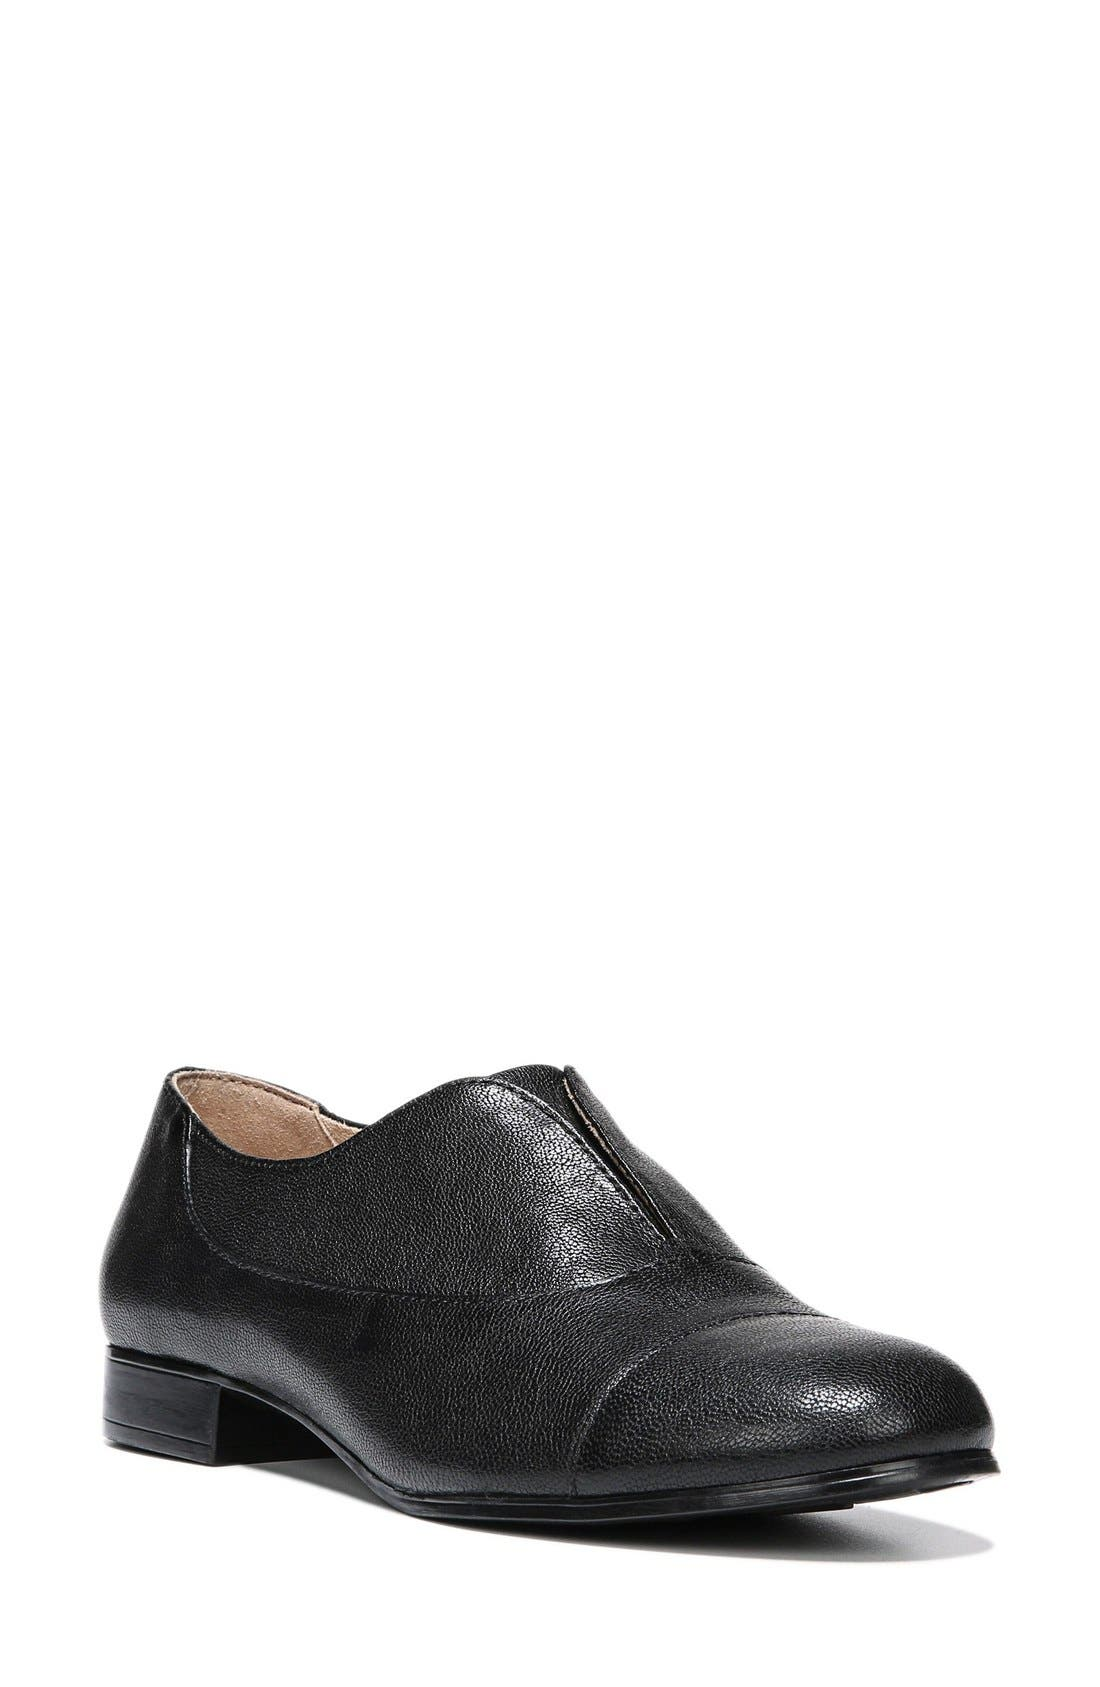 NATURALIZER 'Carabell' Laceless Oxford, Main, color, 001